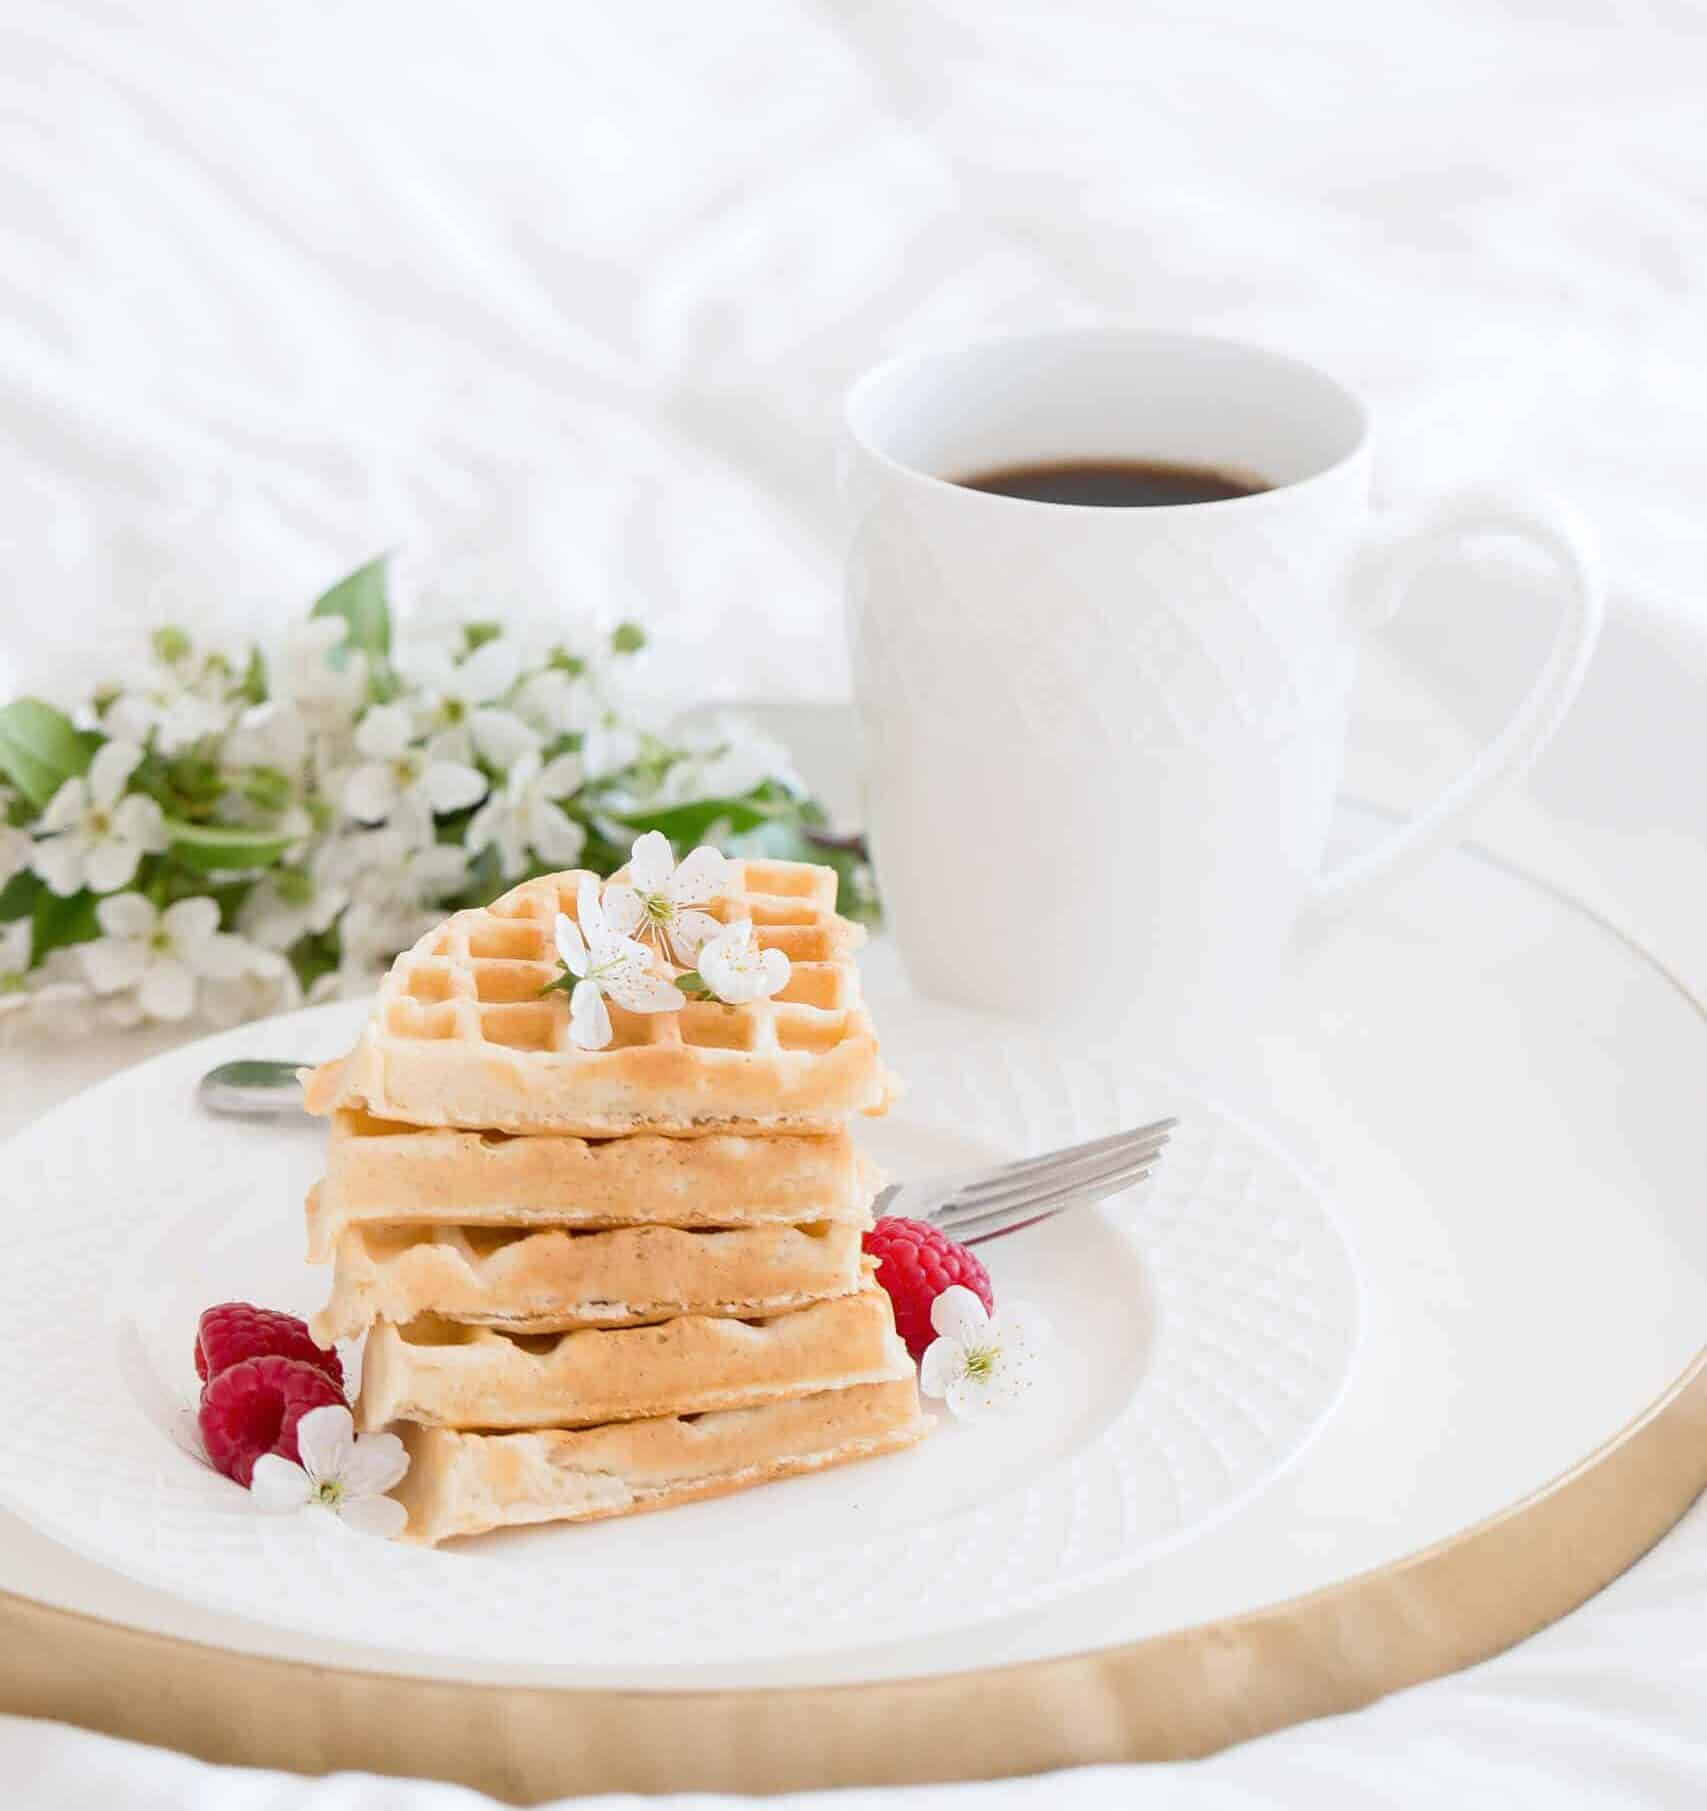 Plate with waffles and strawberries along with a cozy cup of coffee